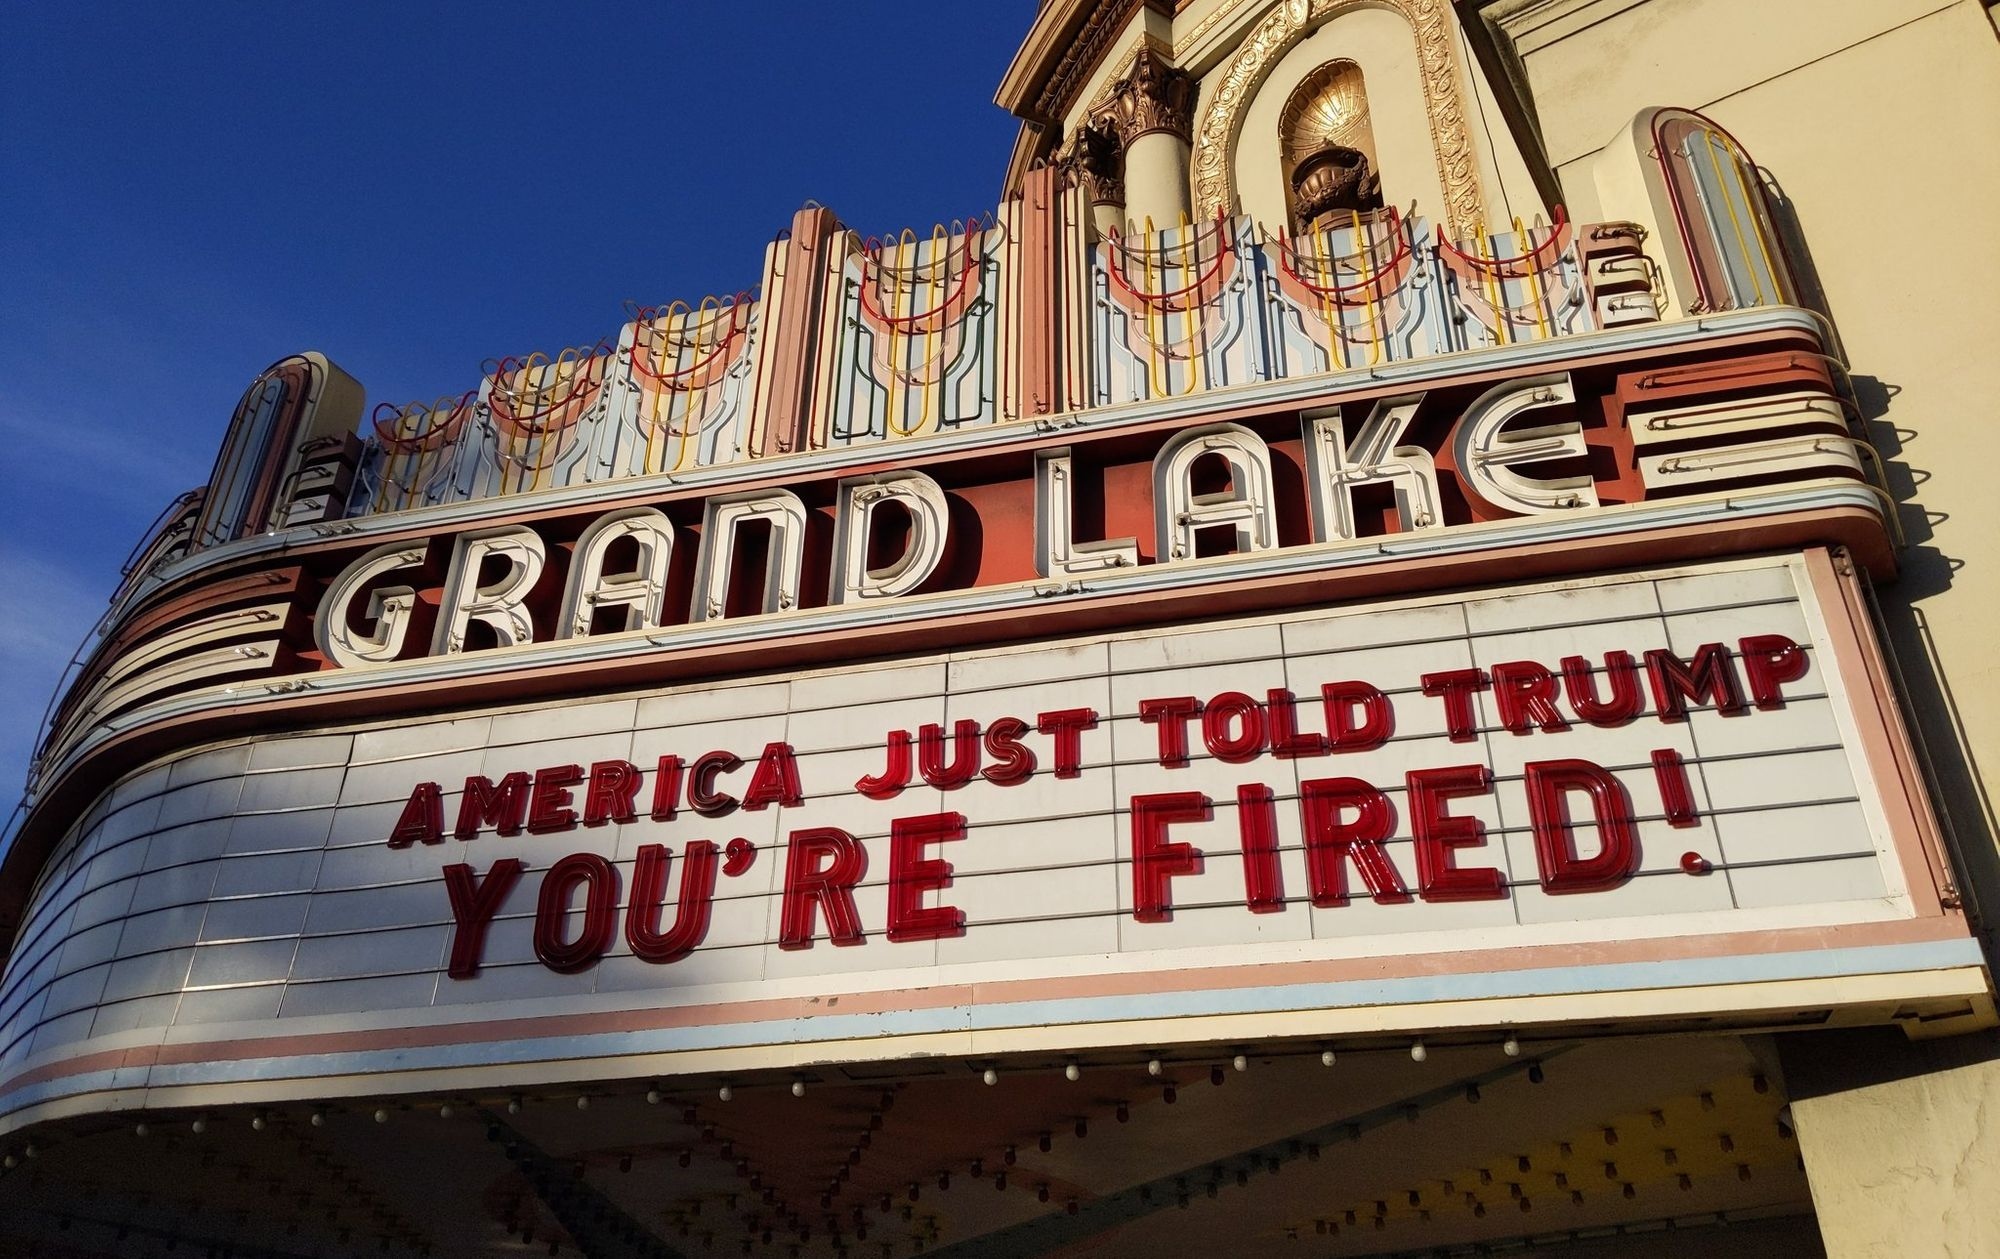 Sunday Links: Grand Lake Theater Marquee in Oakland Reads 'America Just told Trump You're Fired'